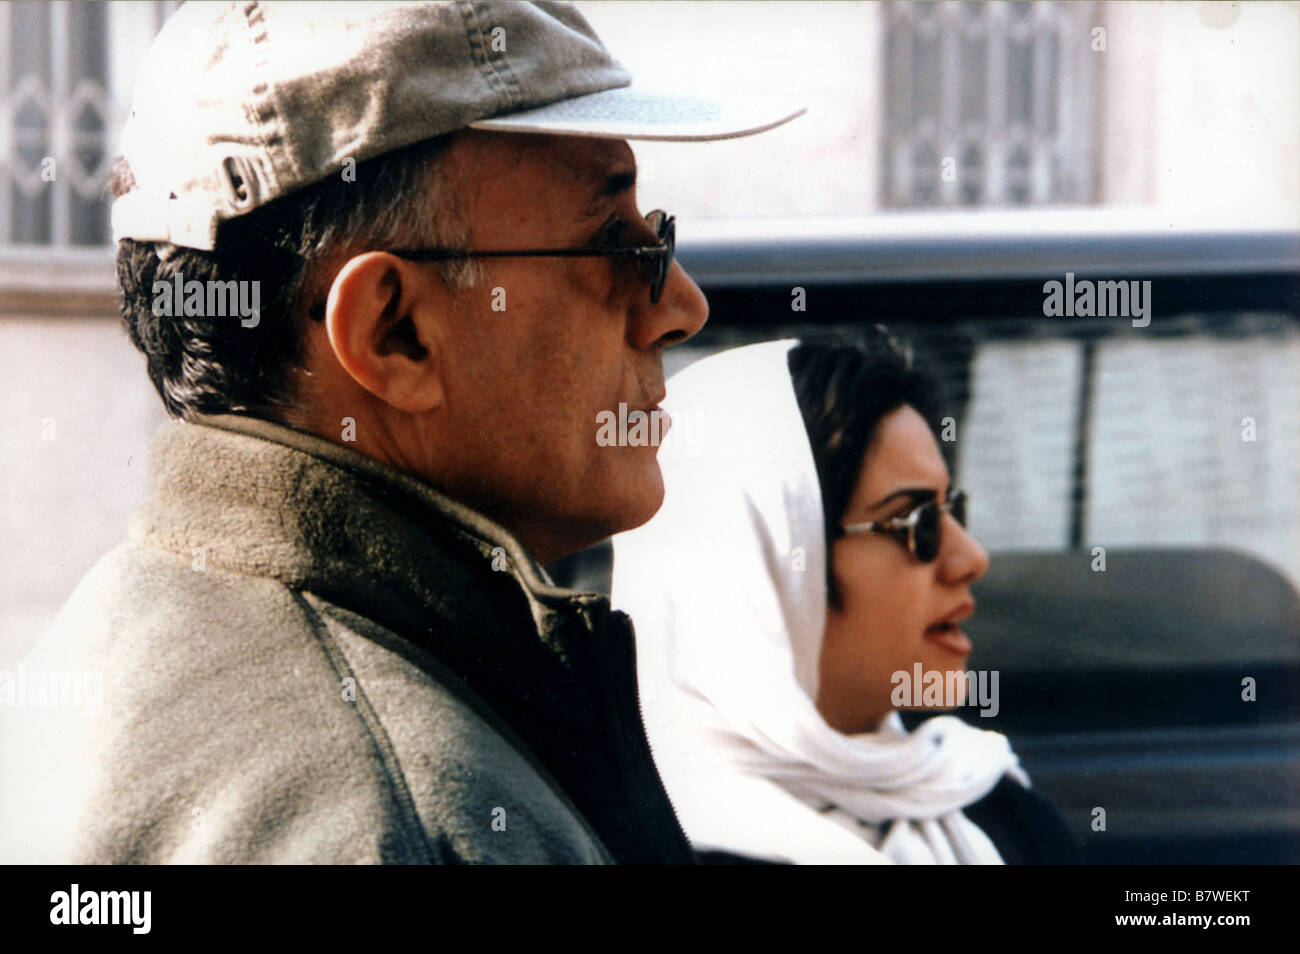 akbari stock photos akbari stock images alamy mania akbari directed by abbas kiarostami stock image